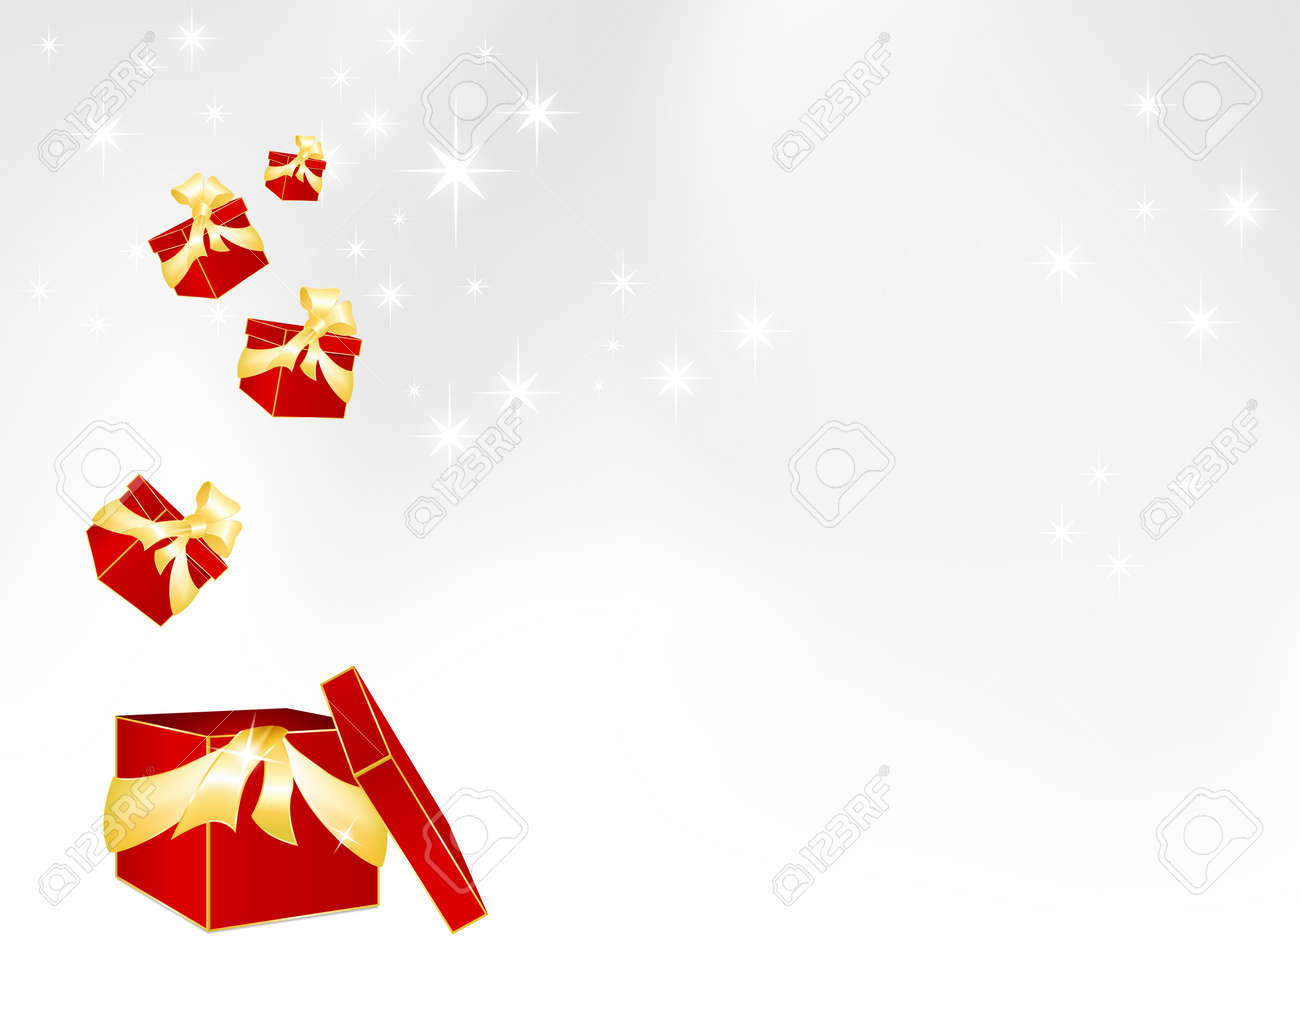 red gift boxes christmas and birthday template gray to red gift boxes christmas and birthday template gray to white background gradient stock